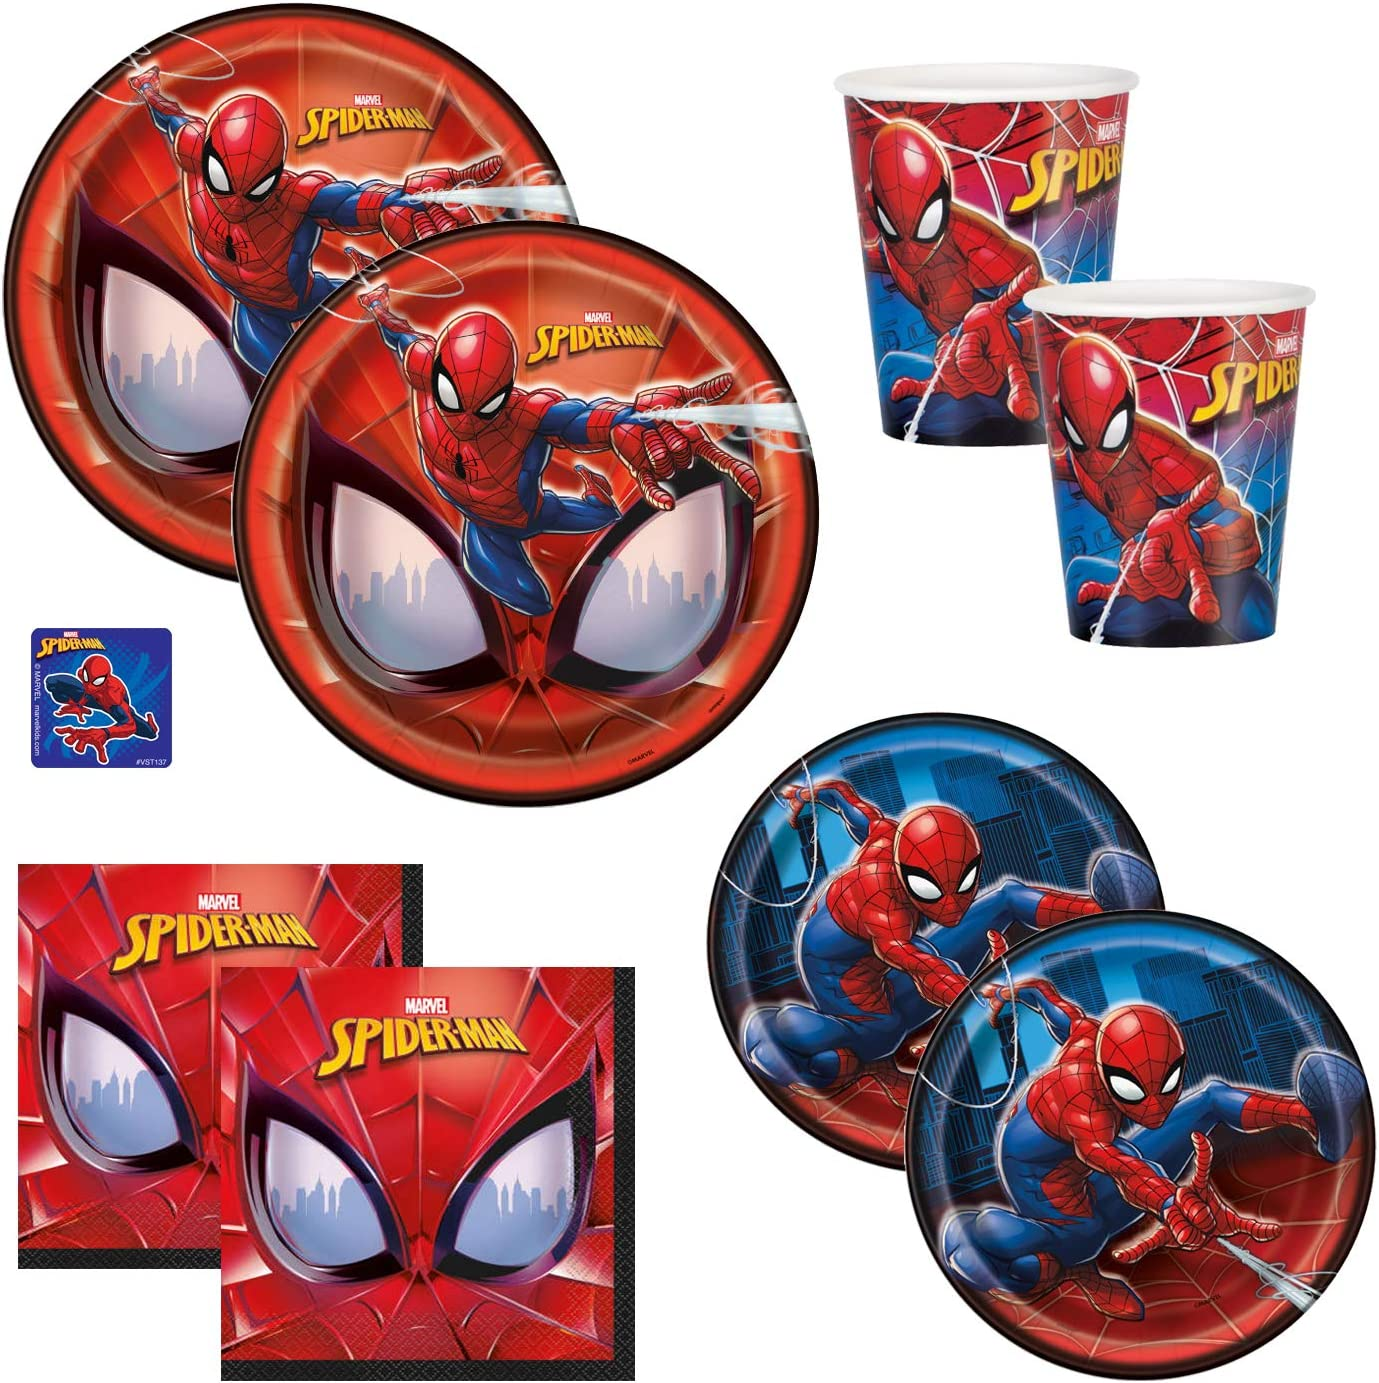 Amazon Com The Toy Express Spiderman Birthday Party Supplies Set Includes Dinner Plates Cake Plates Napkins And Cups Standard Serves 16 Toys Games